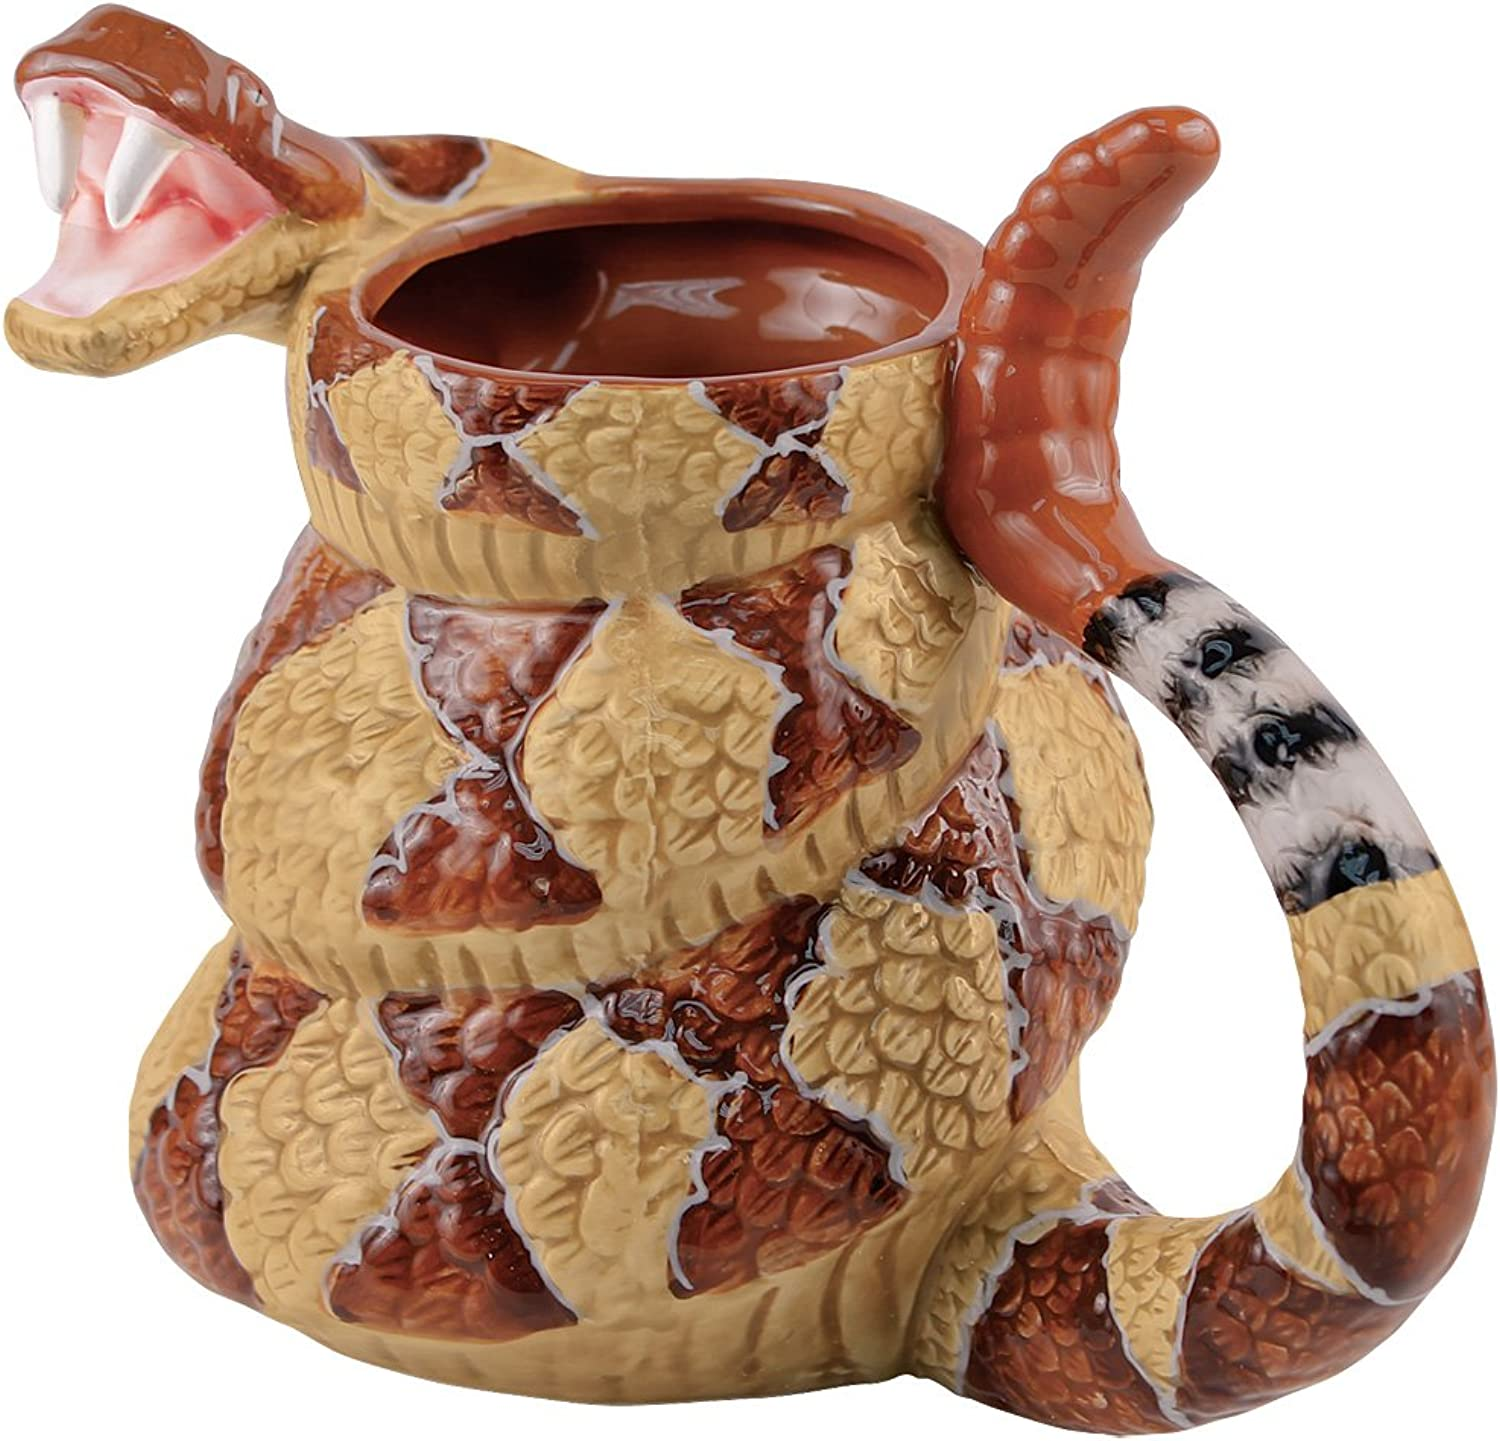 Rattlesnake Coffee Mug Cup - The Late Late Show with Craig Ferguson - 20oz. by AMERICAN LEGACY PRODUCTS